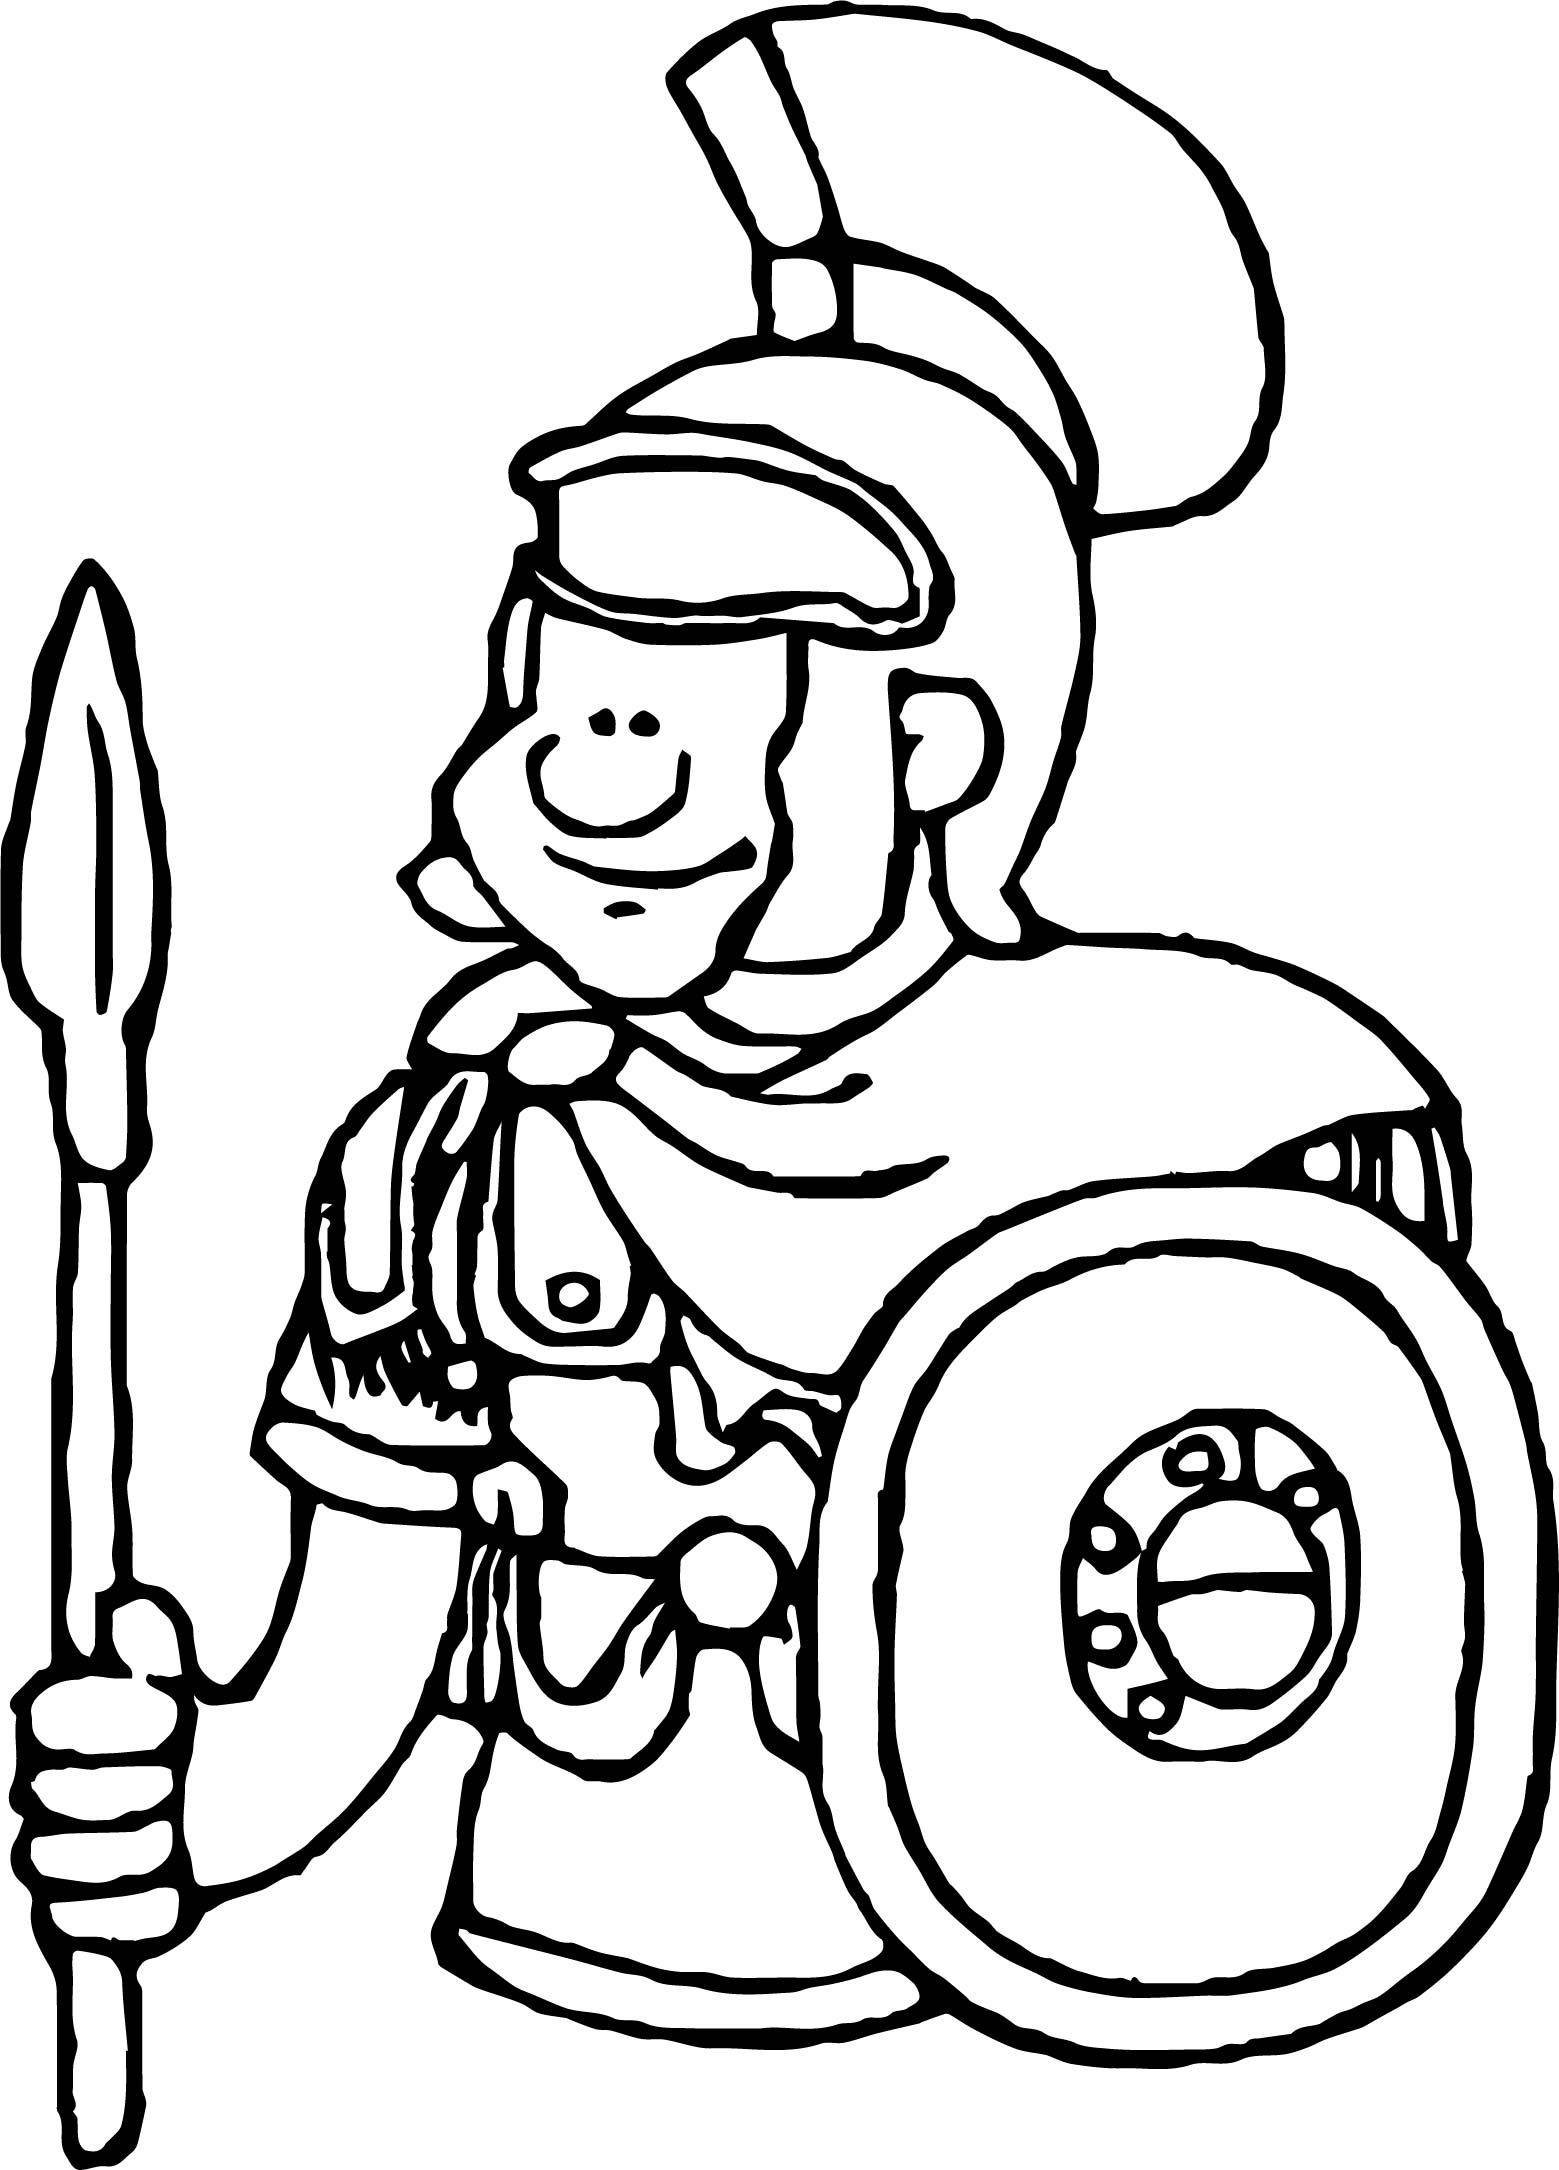 Rome Soldier Soldier Coloring Page